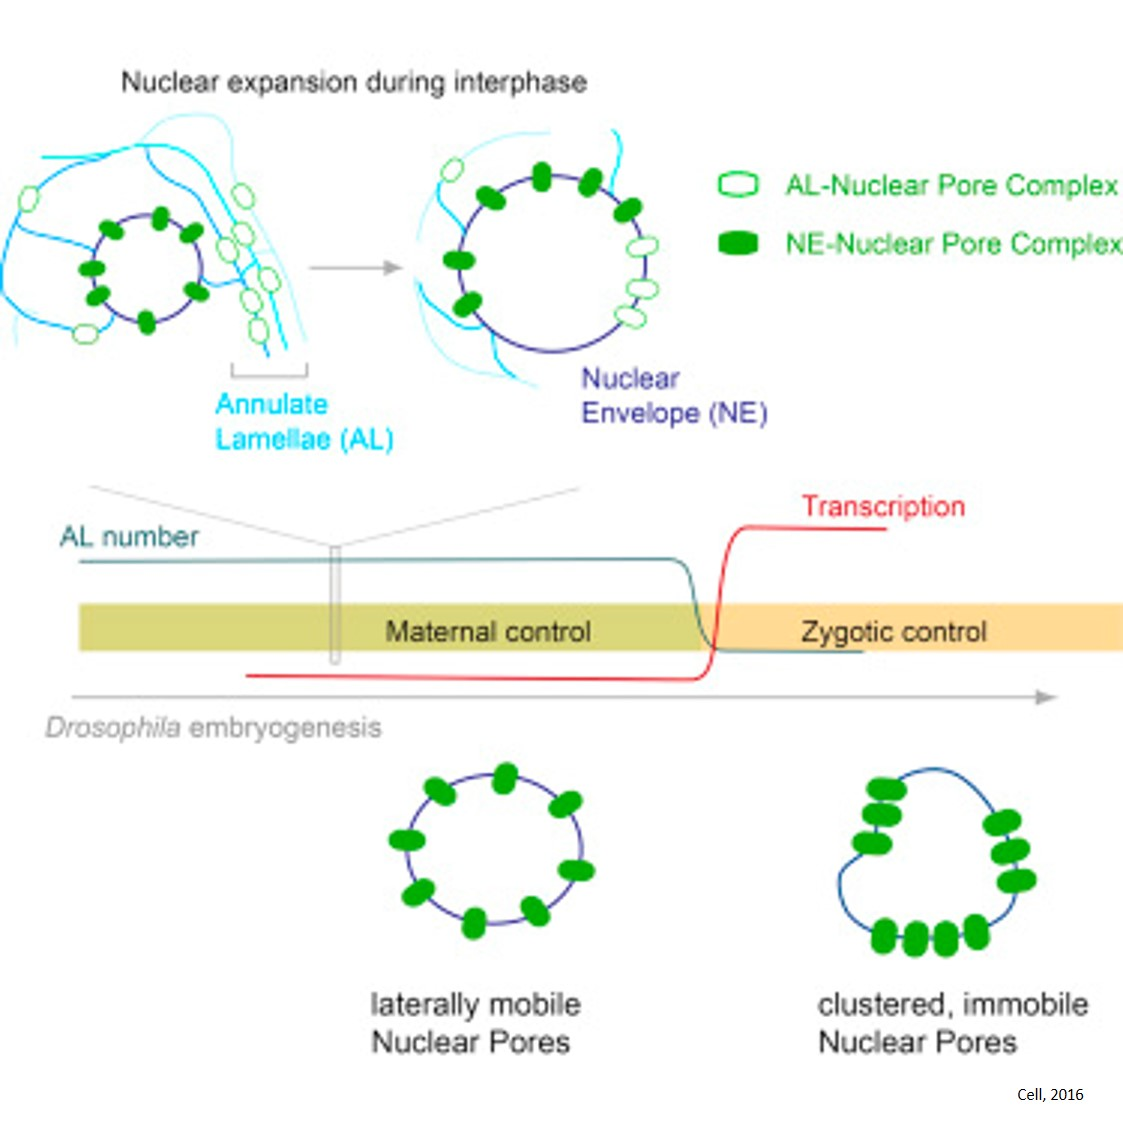 Pre-assembled Nuclear Pores Insert into the Nuclear Envelope during Early Development